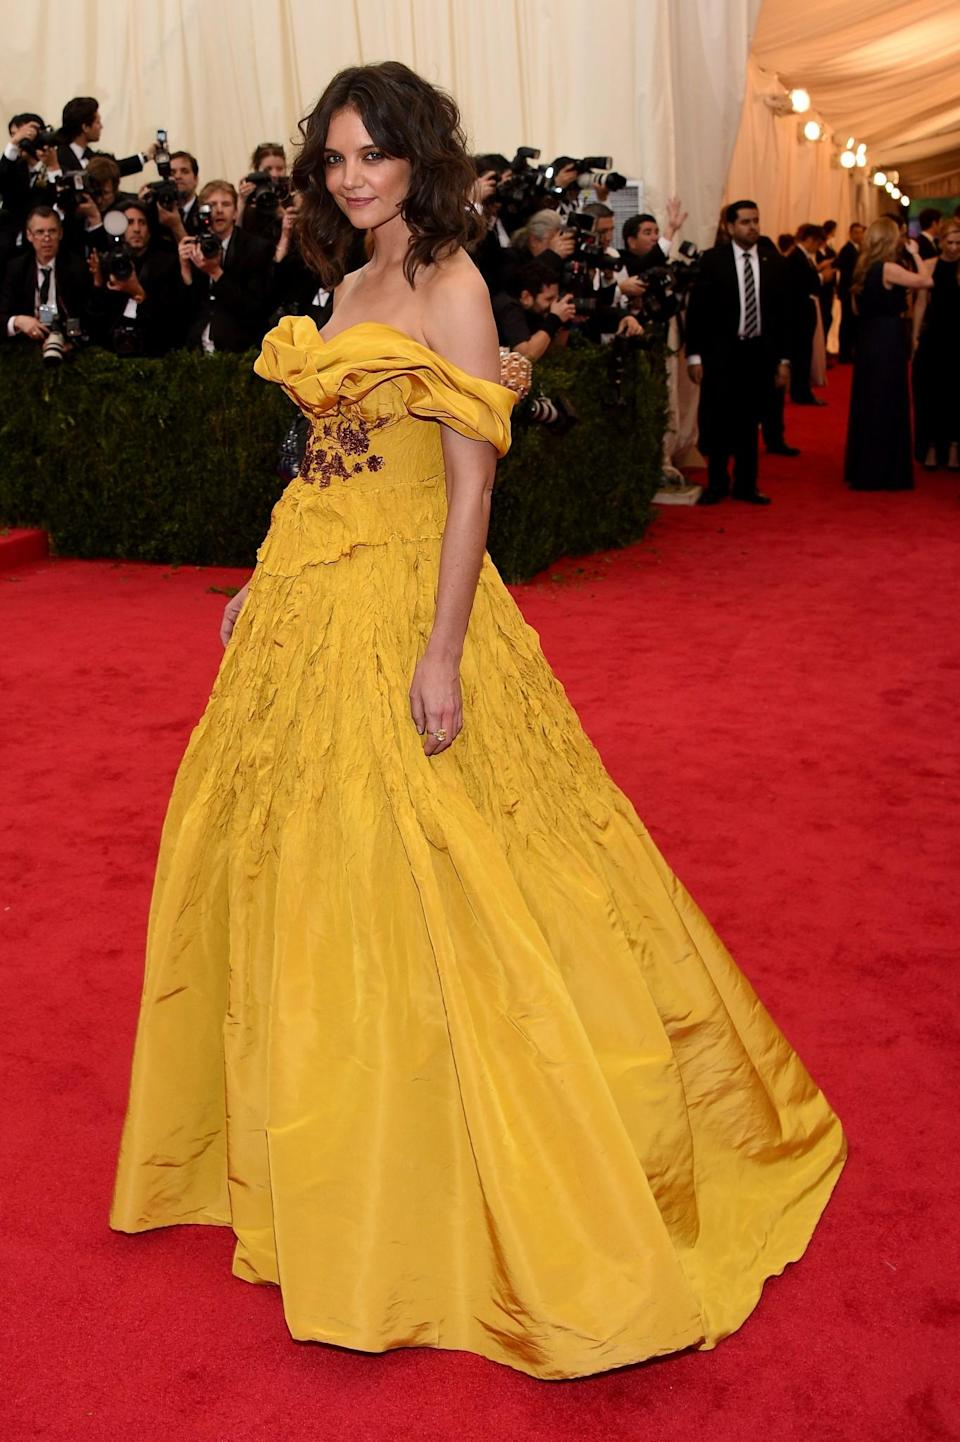 <p>Katie Holmes was ahead of the trend in 2014 when she wore an off-the-shoulder Belle inspired frock to the Met Gala. [Photo: Getty] </p>